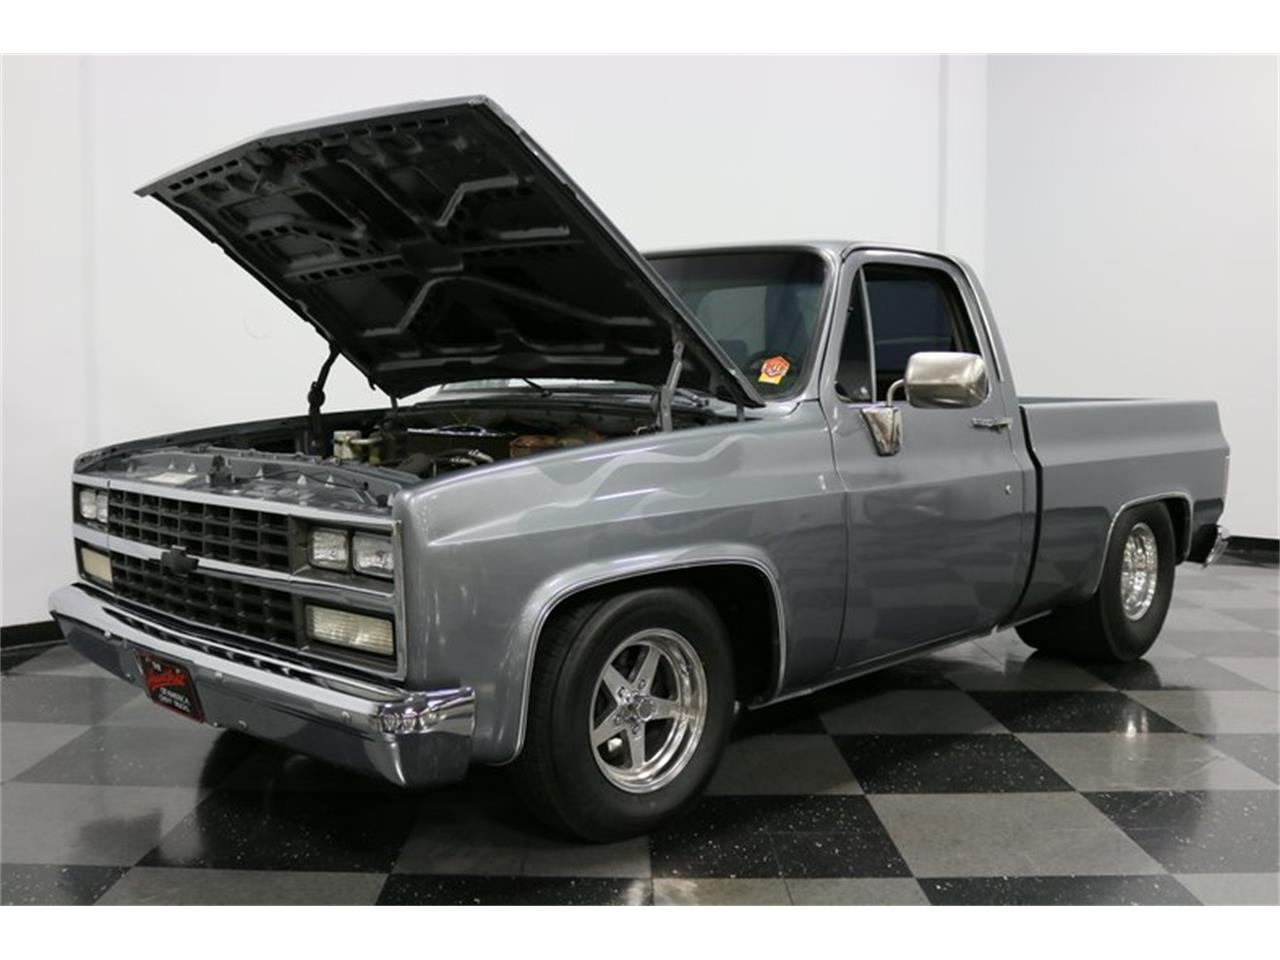 1980 chevrolet c10 for sale classiccars cc 1162518 Green Light 1972 Chevrolet C10 large picture of 80 c10 ox06